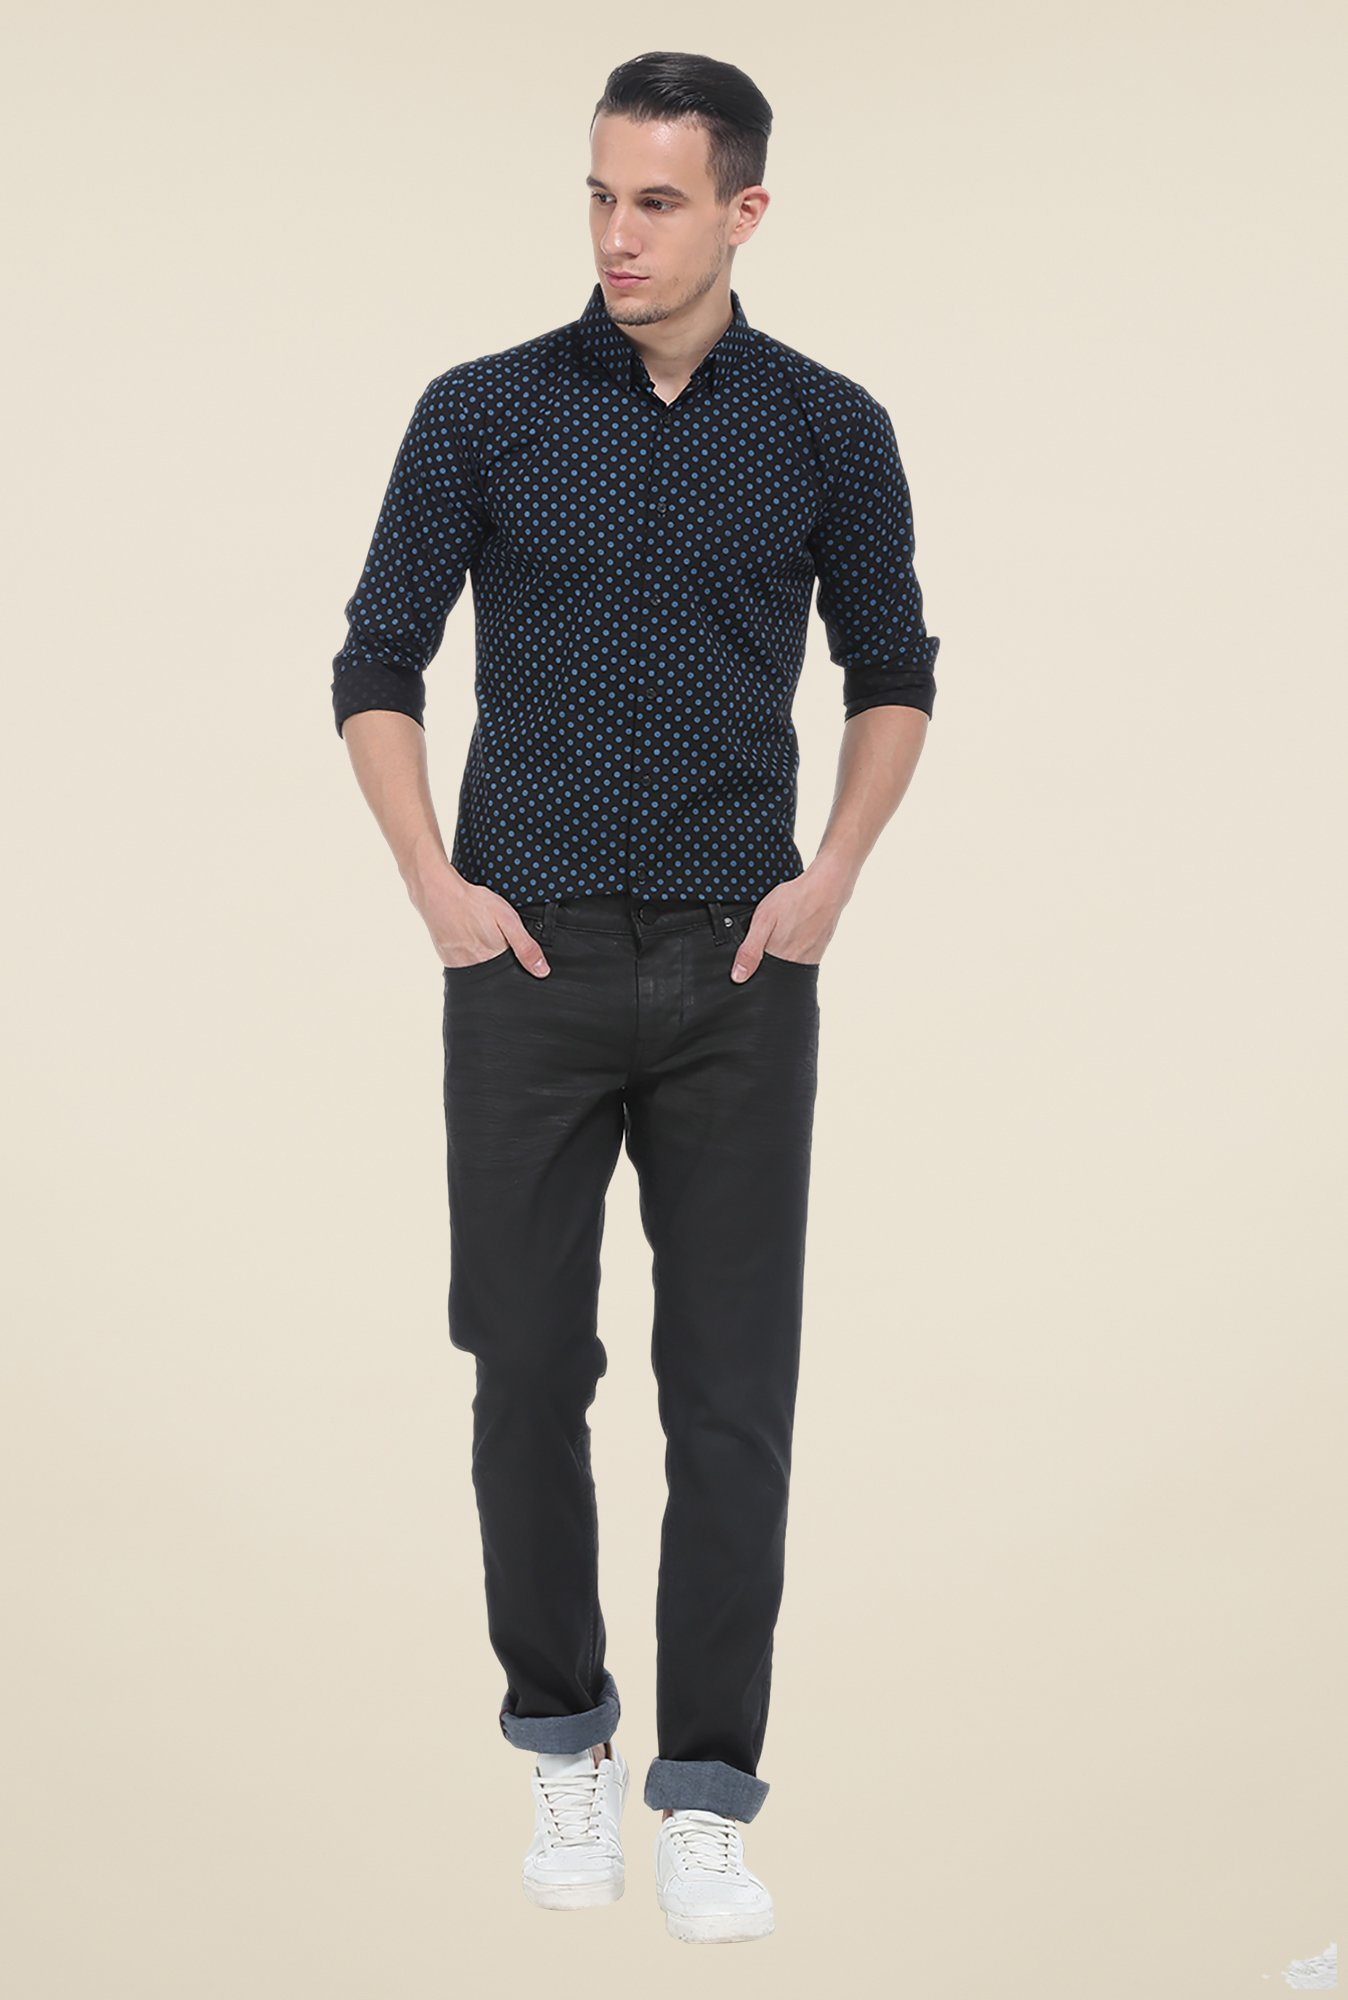 Basics Black Printed Cotton Shirt